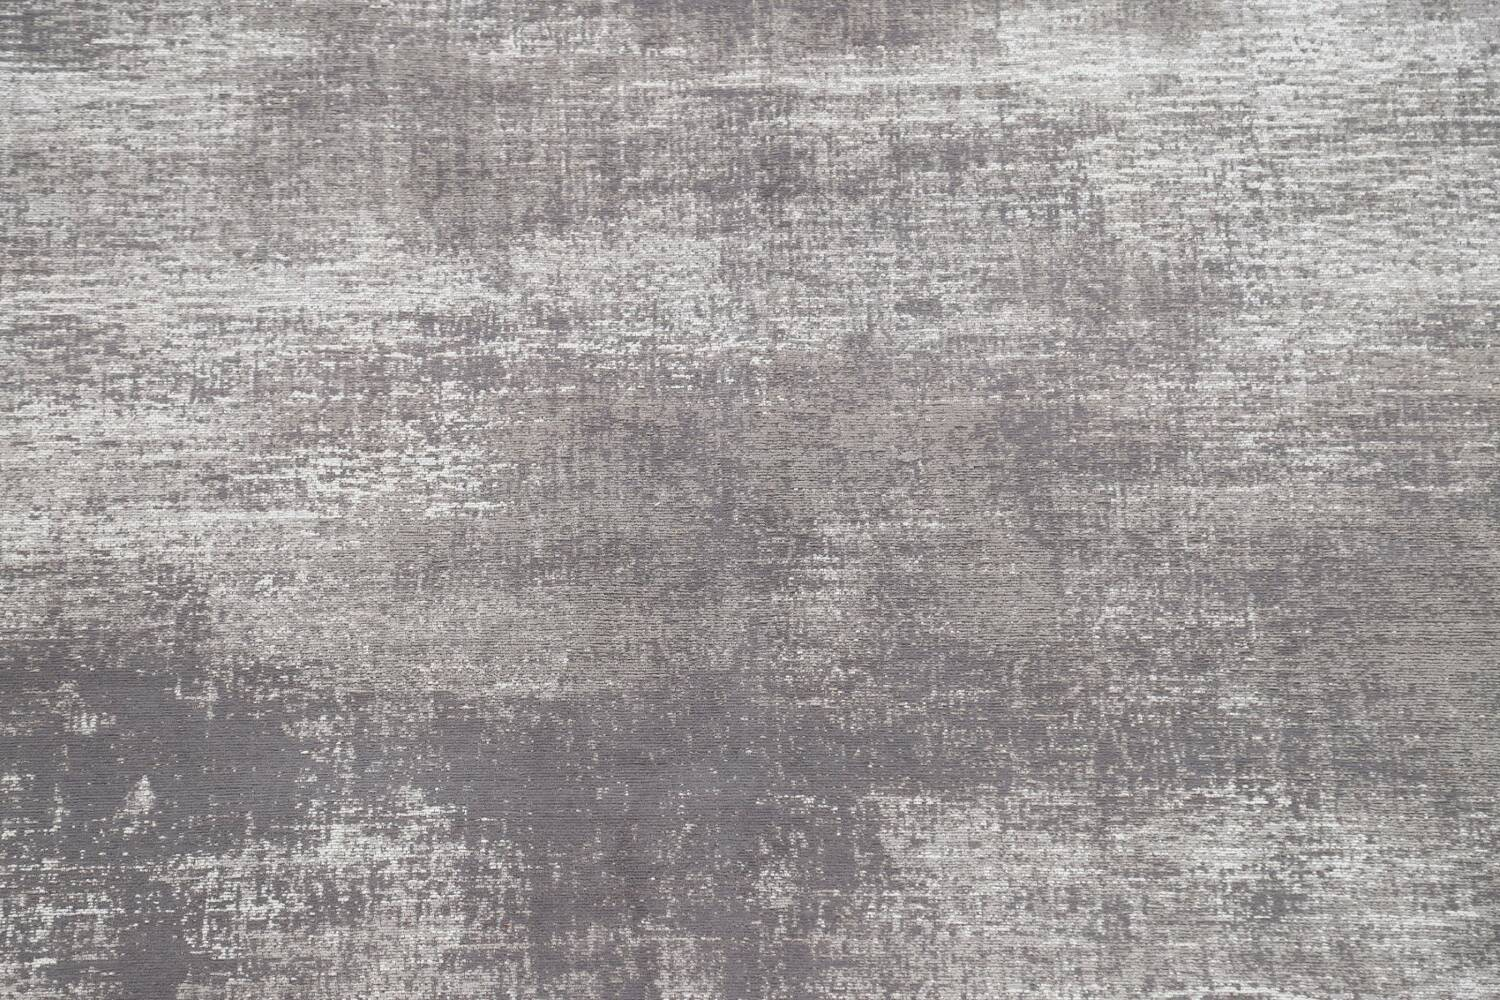 Abstract Modern Oriental Area Rug 5x8 image 4